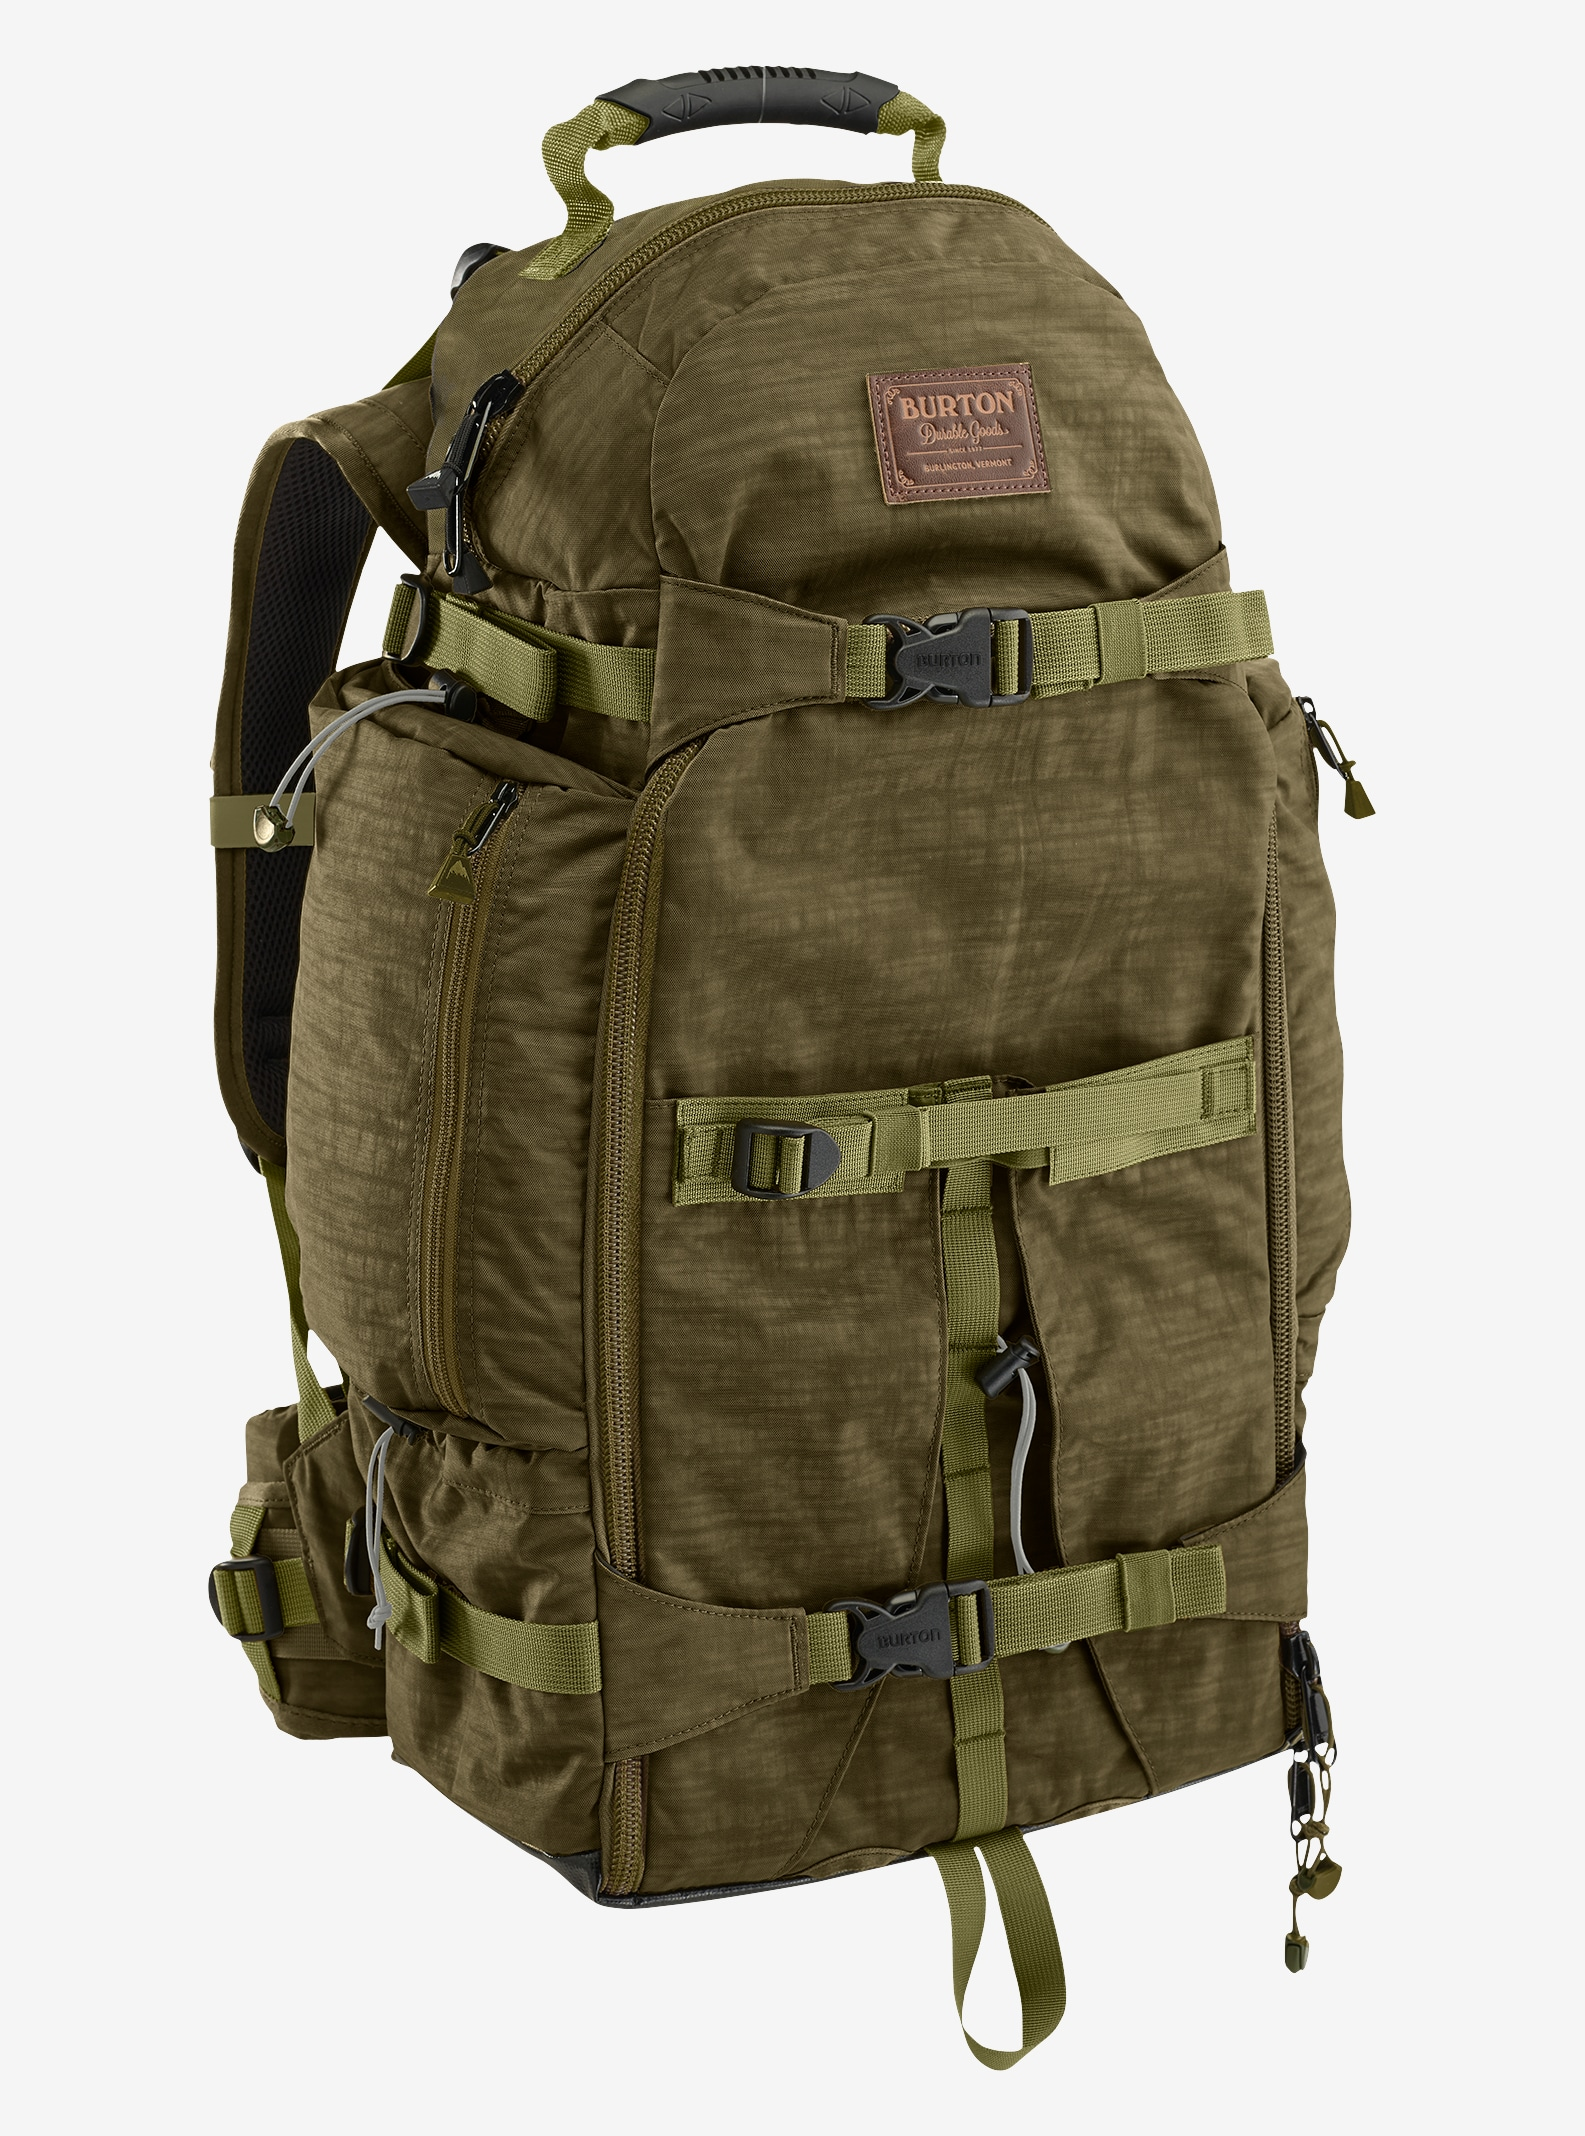 Burton F-Stop 28L Camera Backpack shown in Drab Crinkle